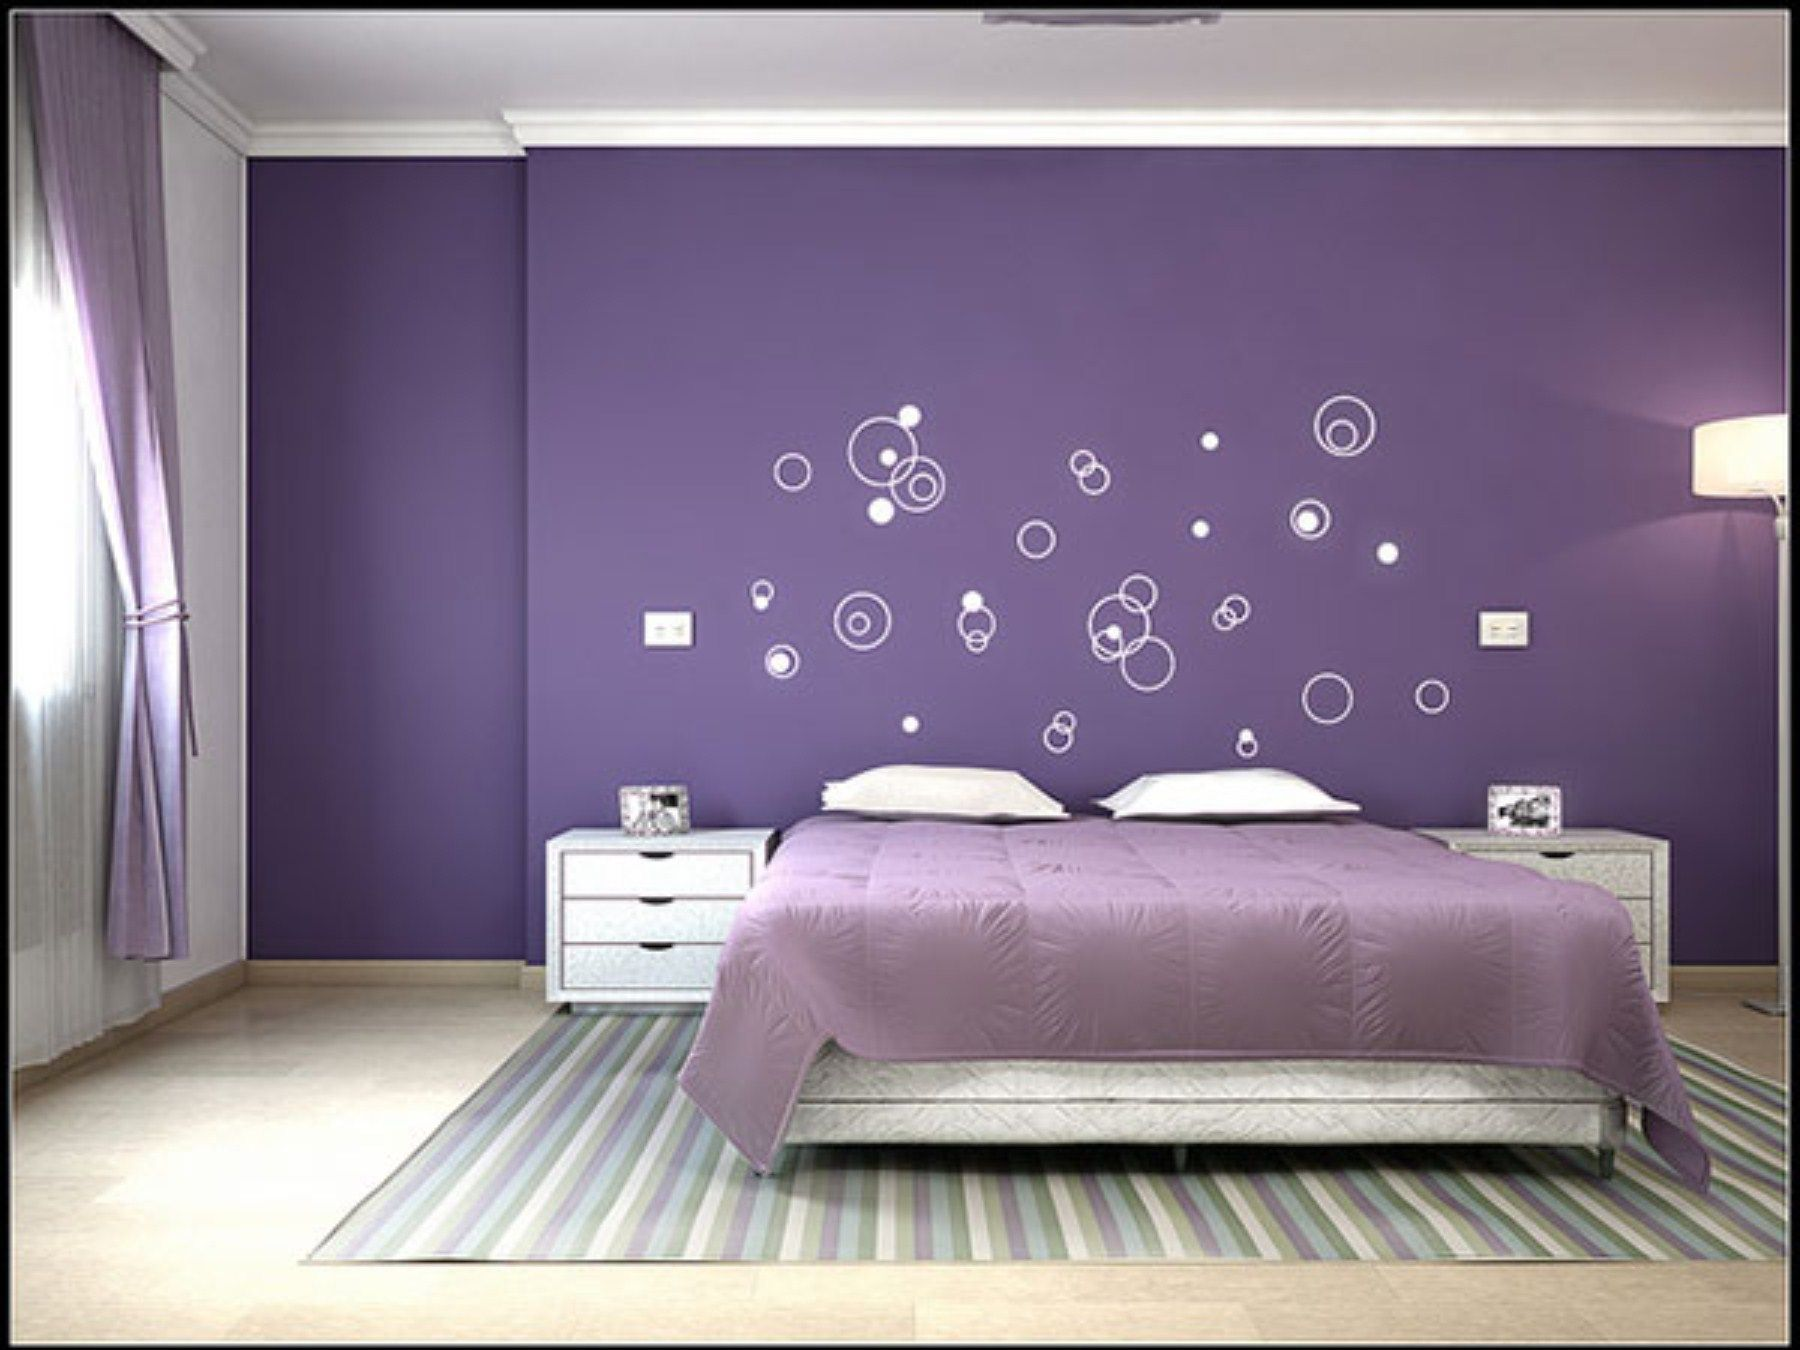 Violet bedroom color ideas - Purple Bedroom Color Schemes With Unique Wall Art 25 Bedroom Design With Beautiful Color Schemes